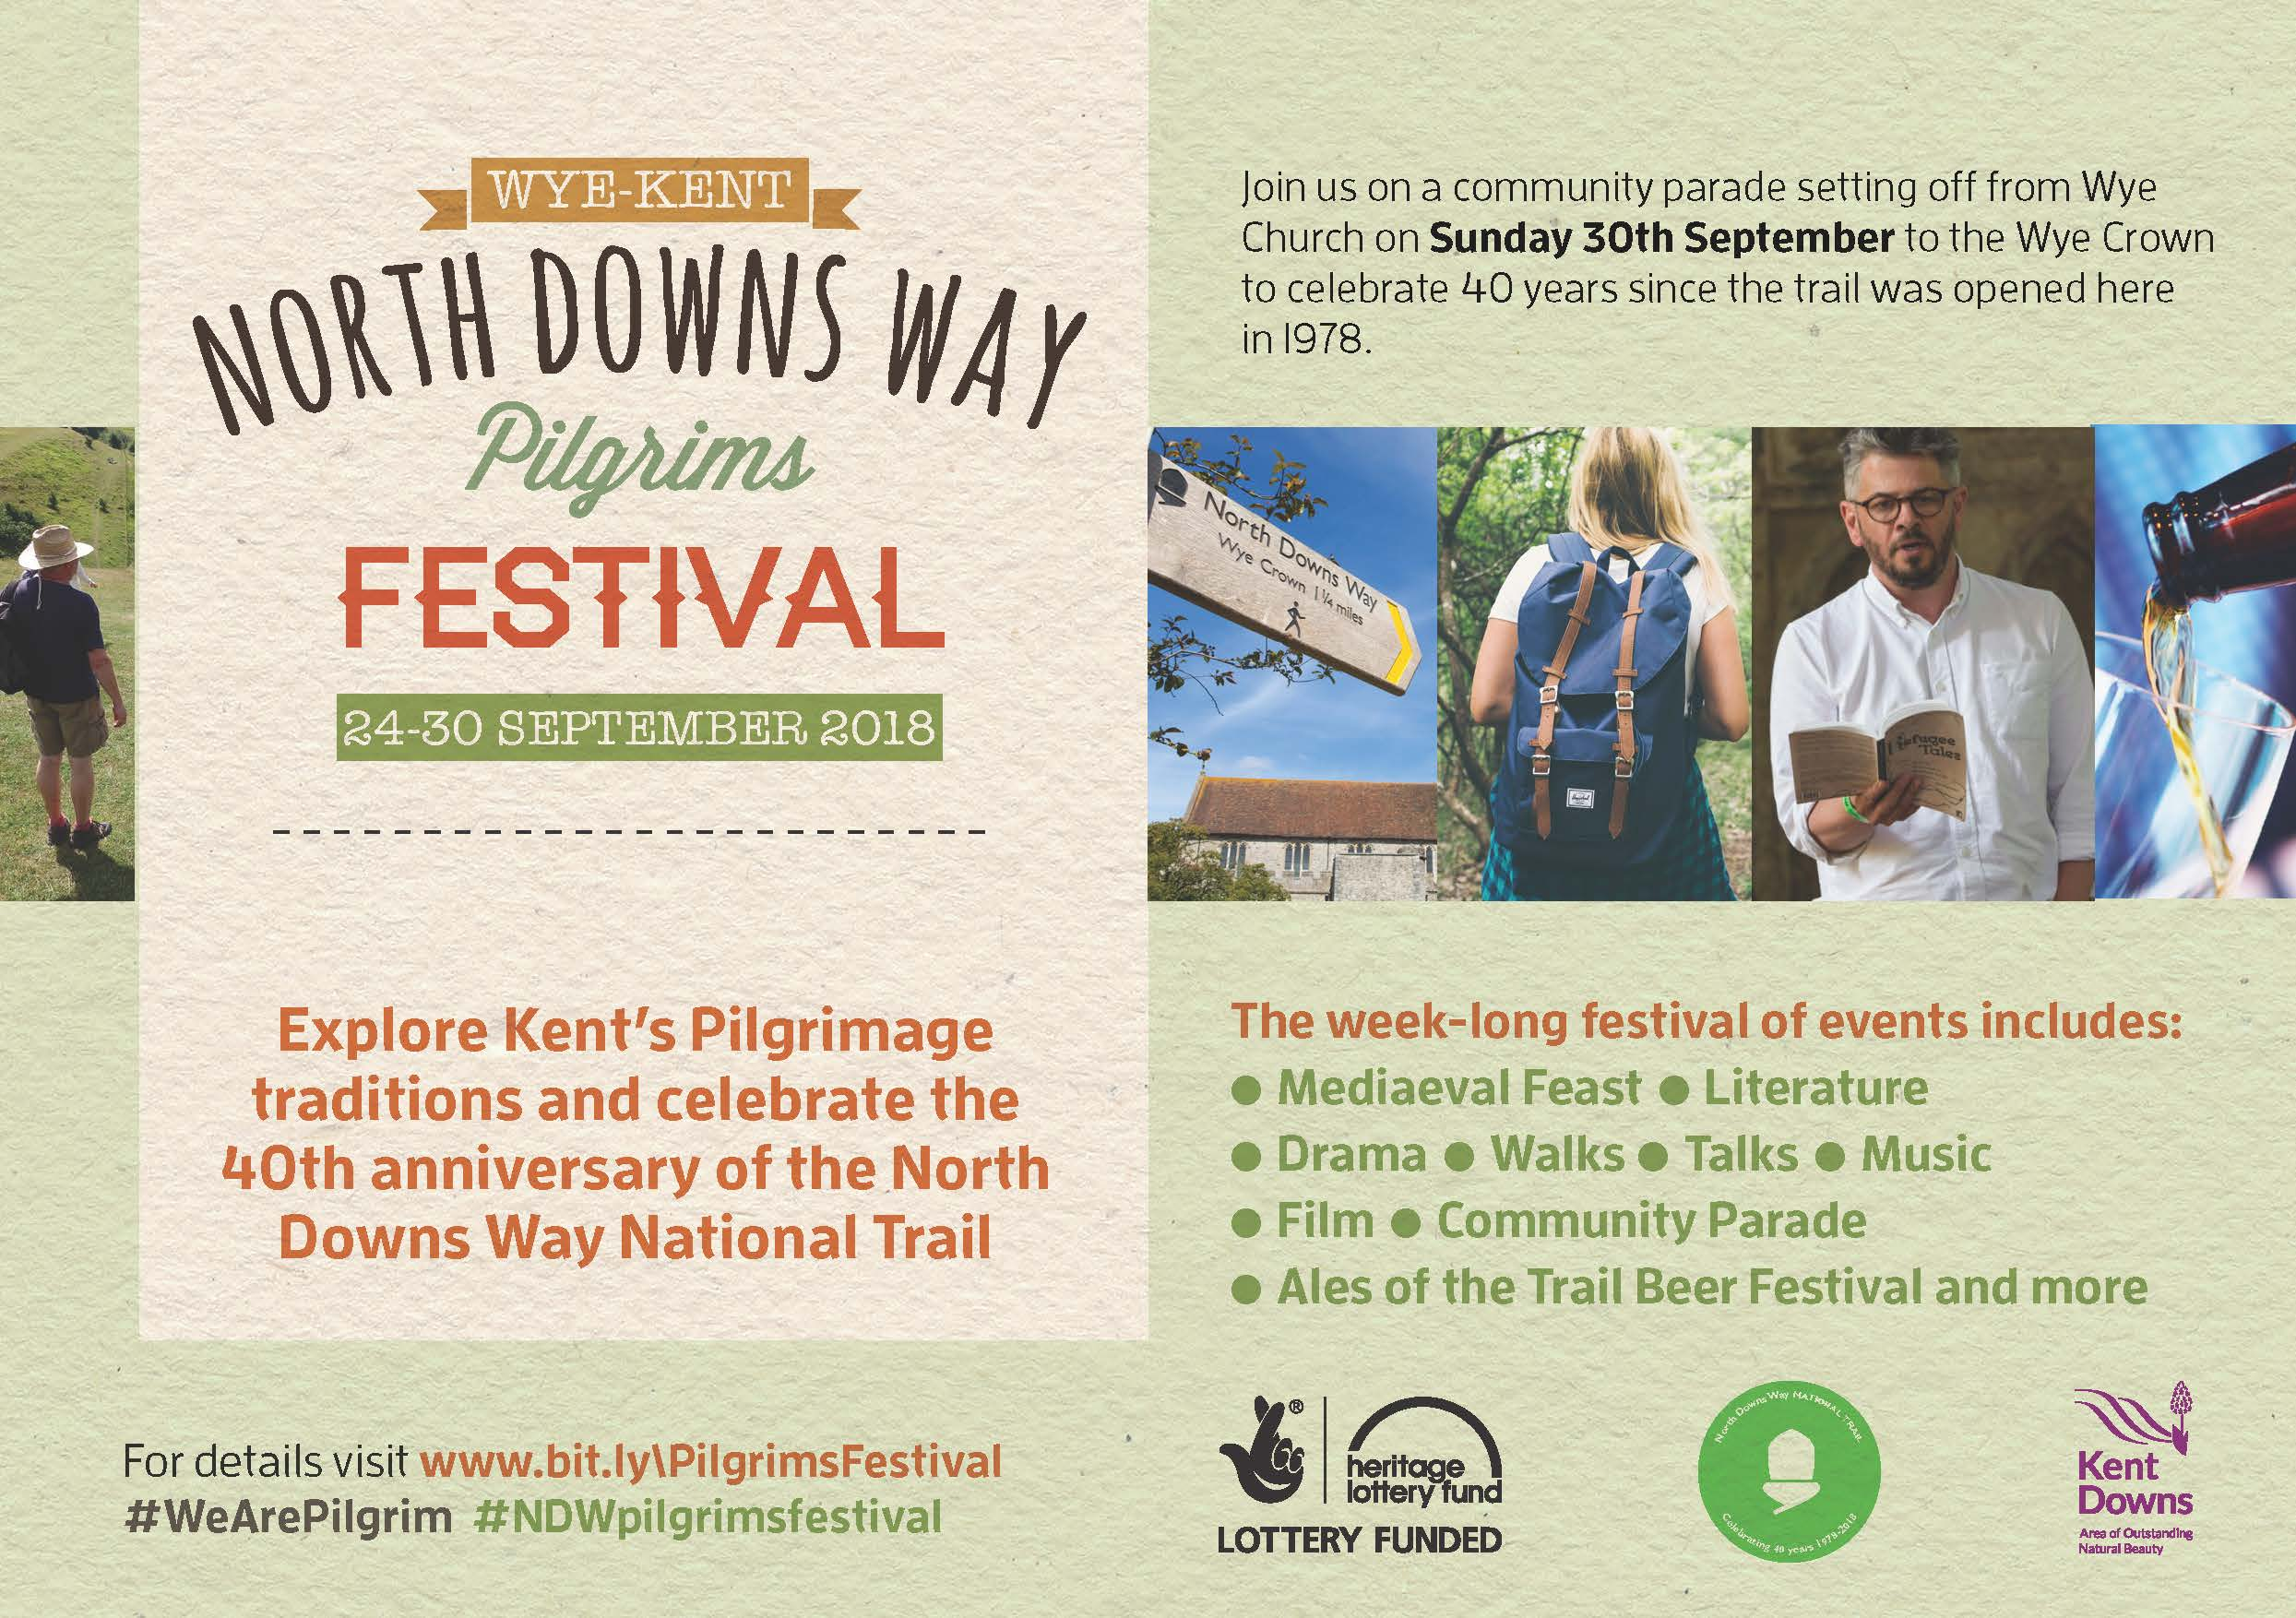 North Downs Way Pilgrims Festival Flyer_Page_1.jpg